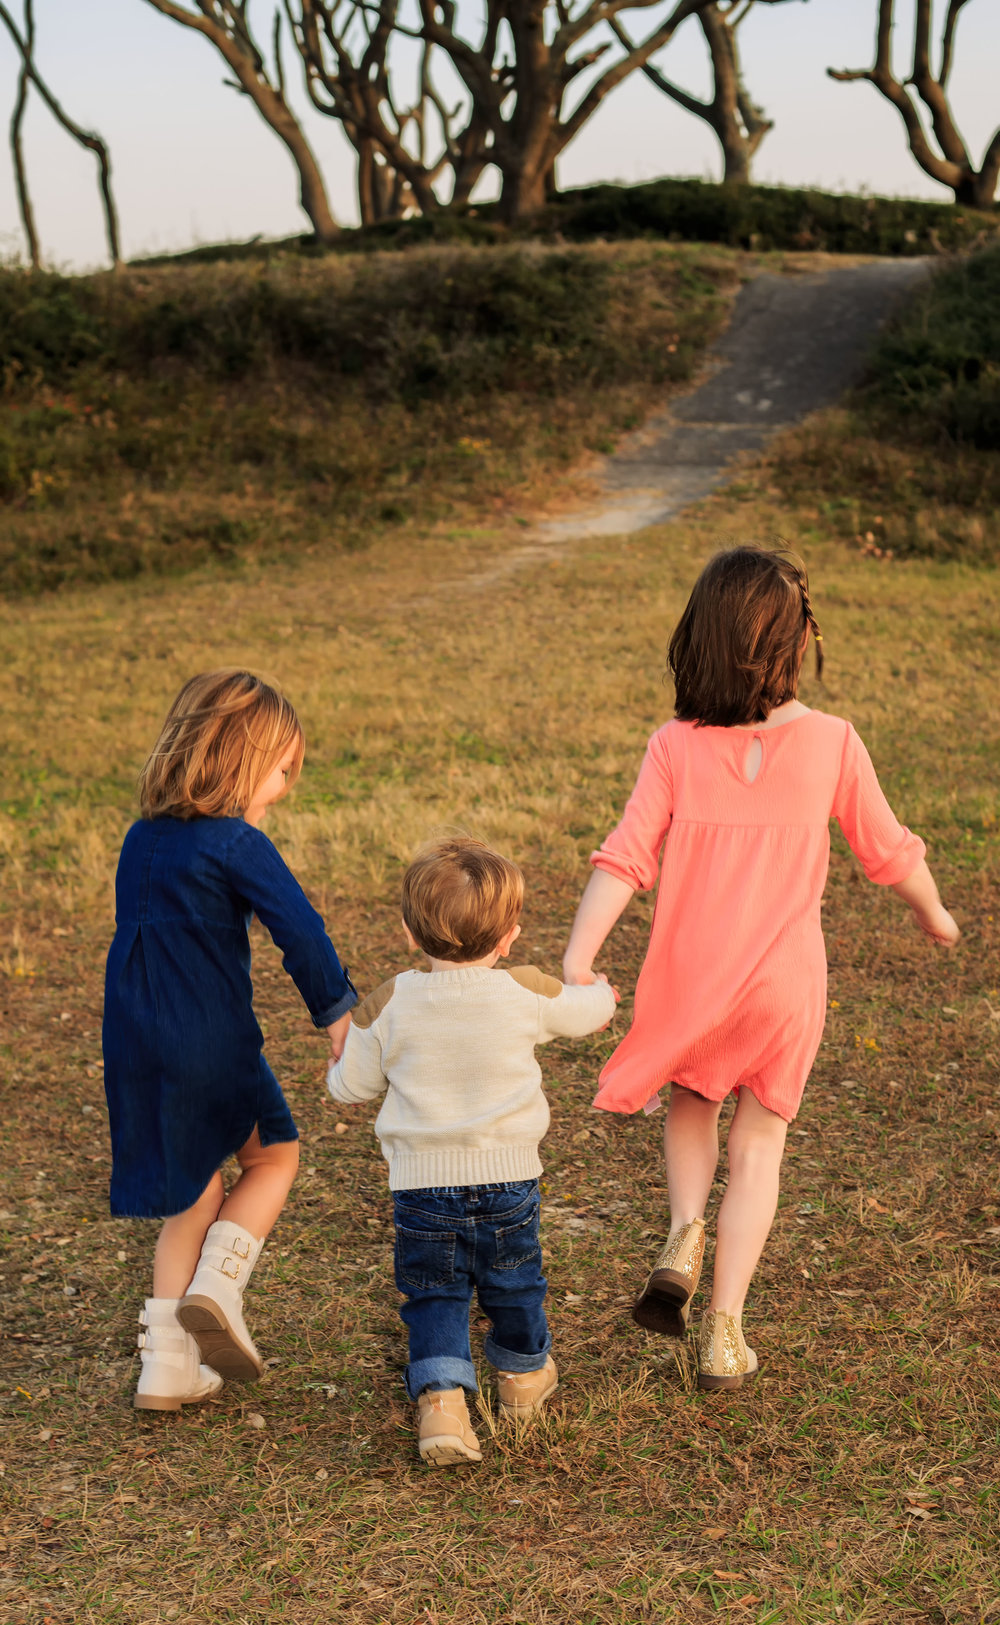 NC_Family_photographer_Tiffany_Abruzzo_Photography_54.jpg